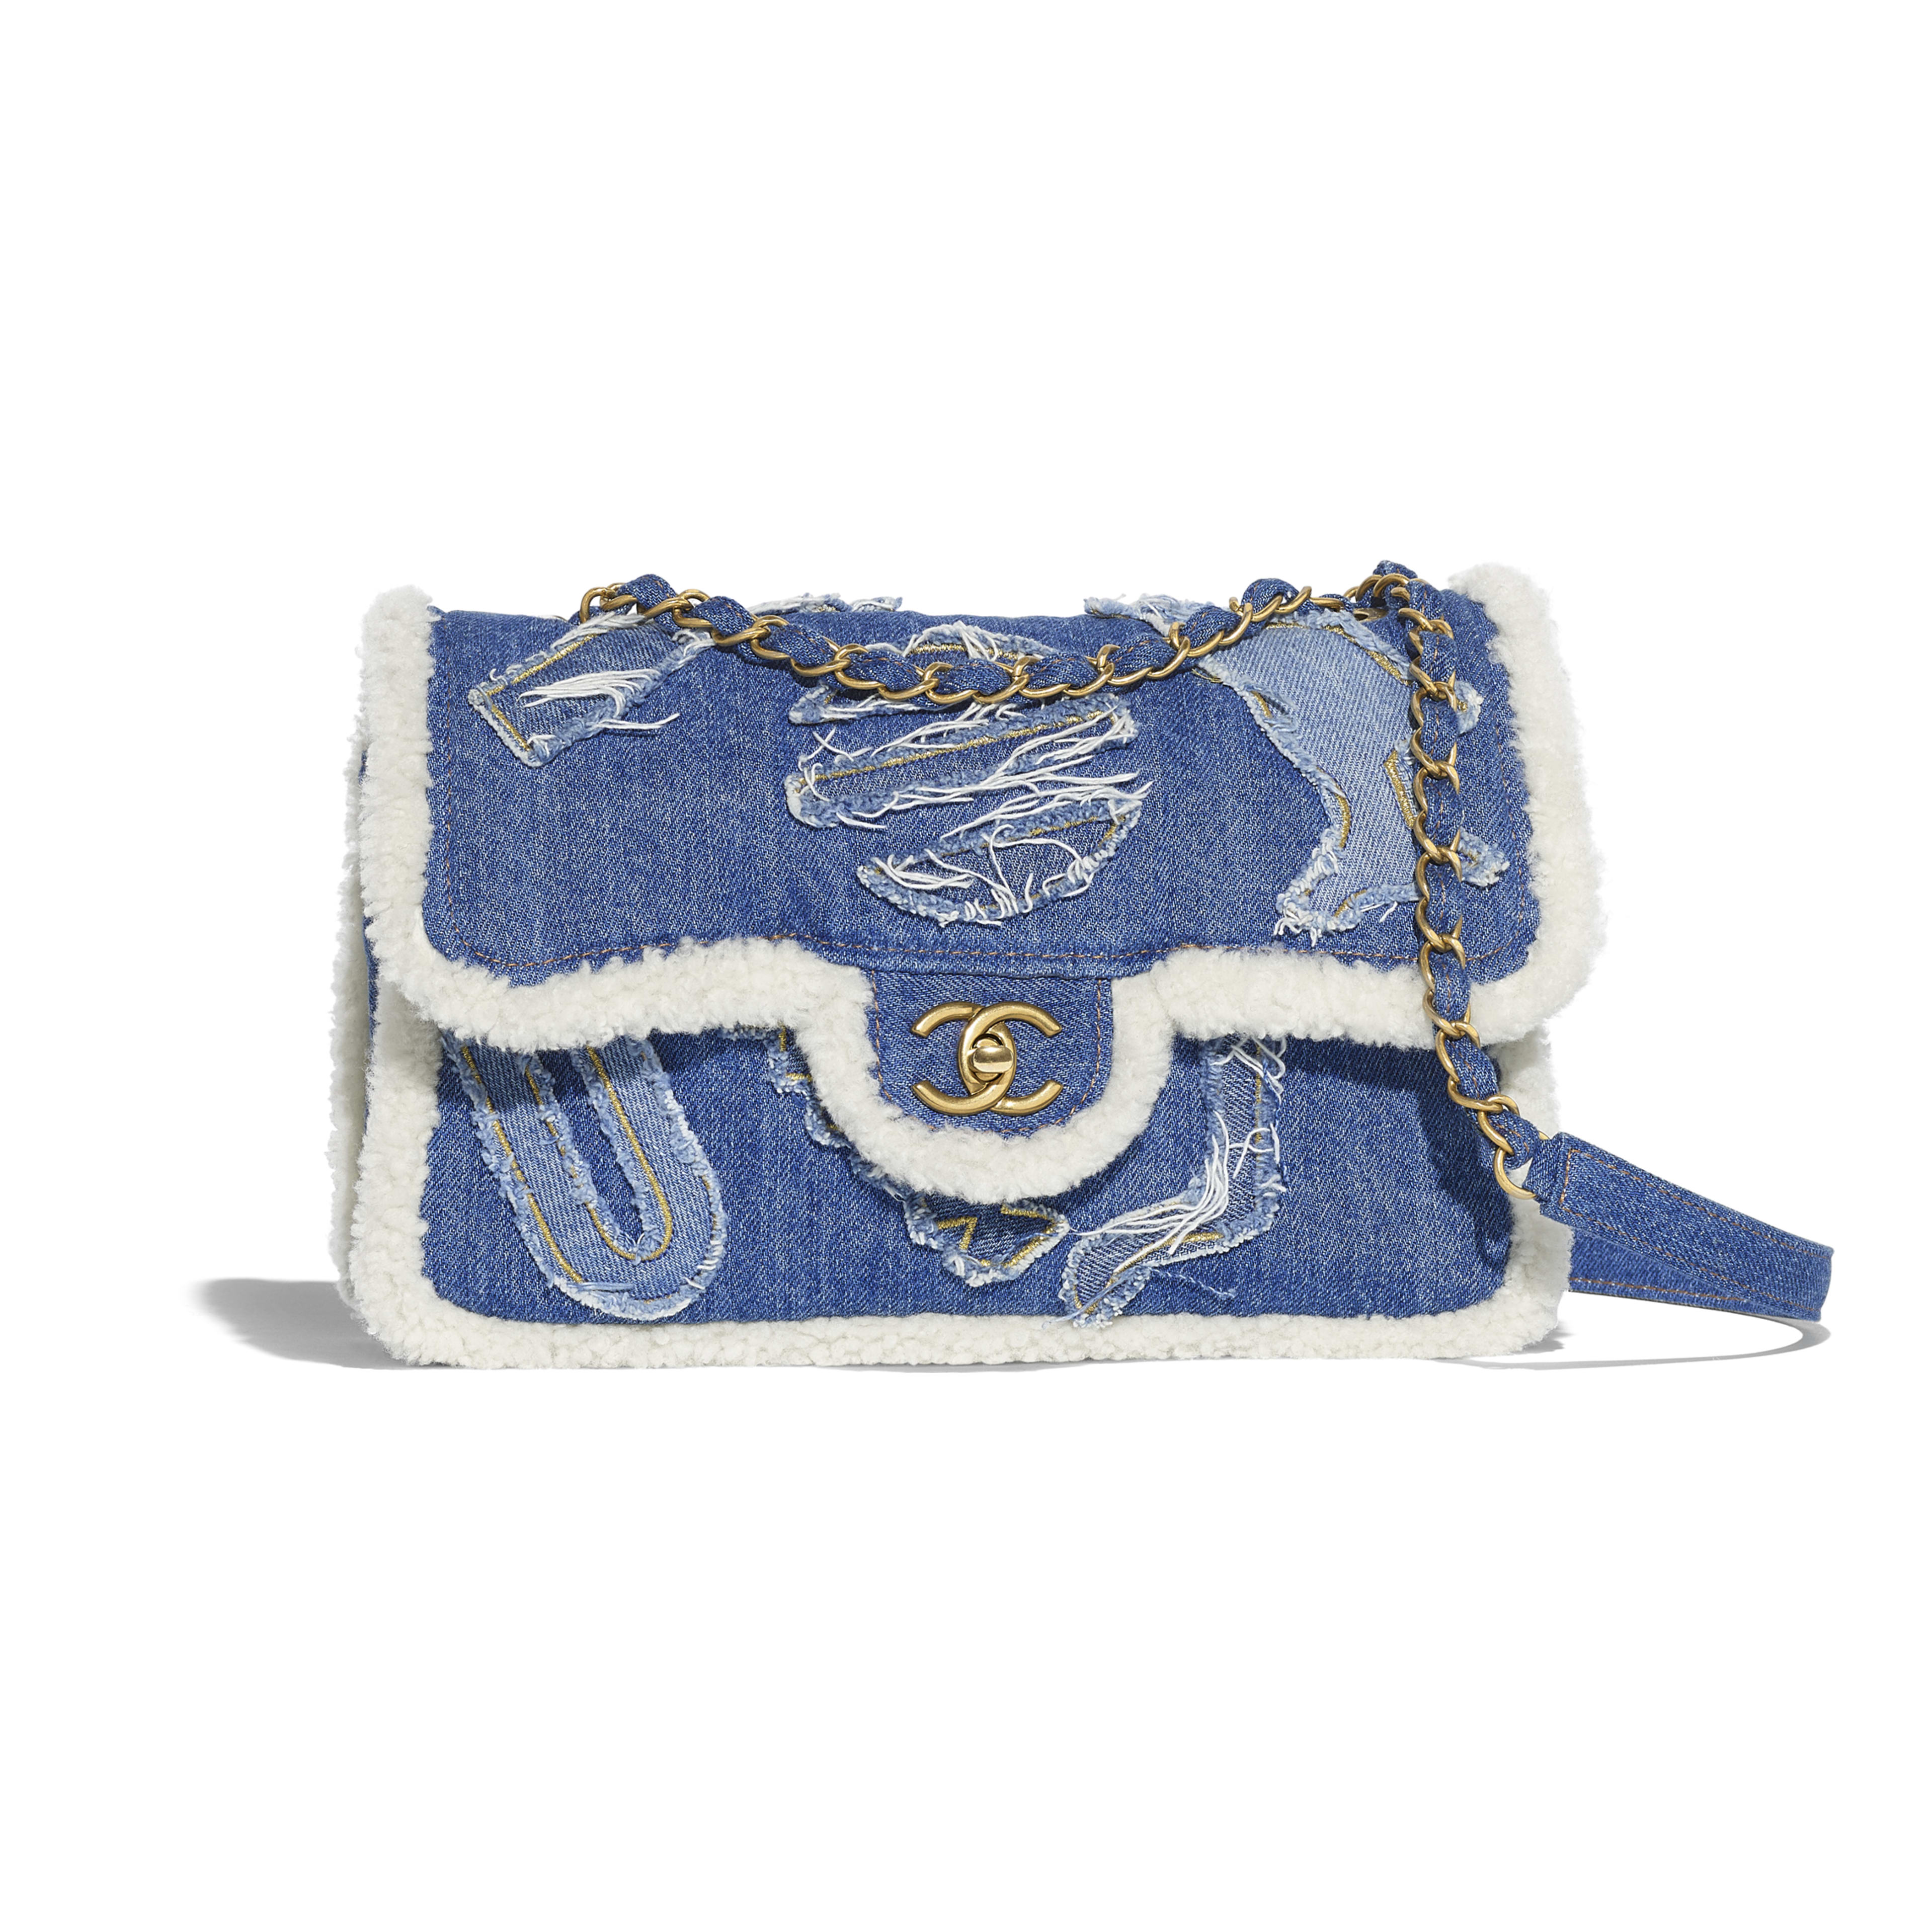 Flap Bag - Light Blue - Cotton, Shearling Sheepskin & Gold-Tone Metal - Default view - see full sized version